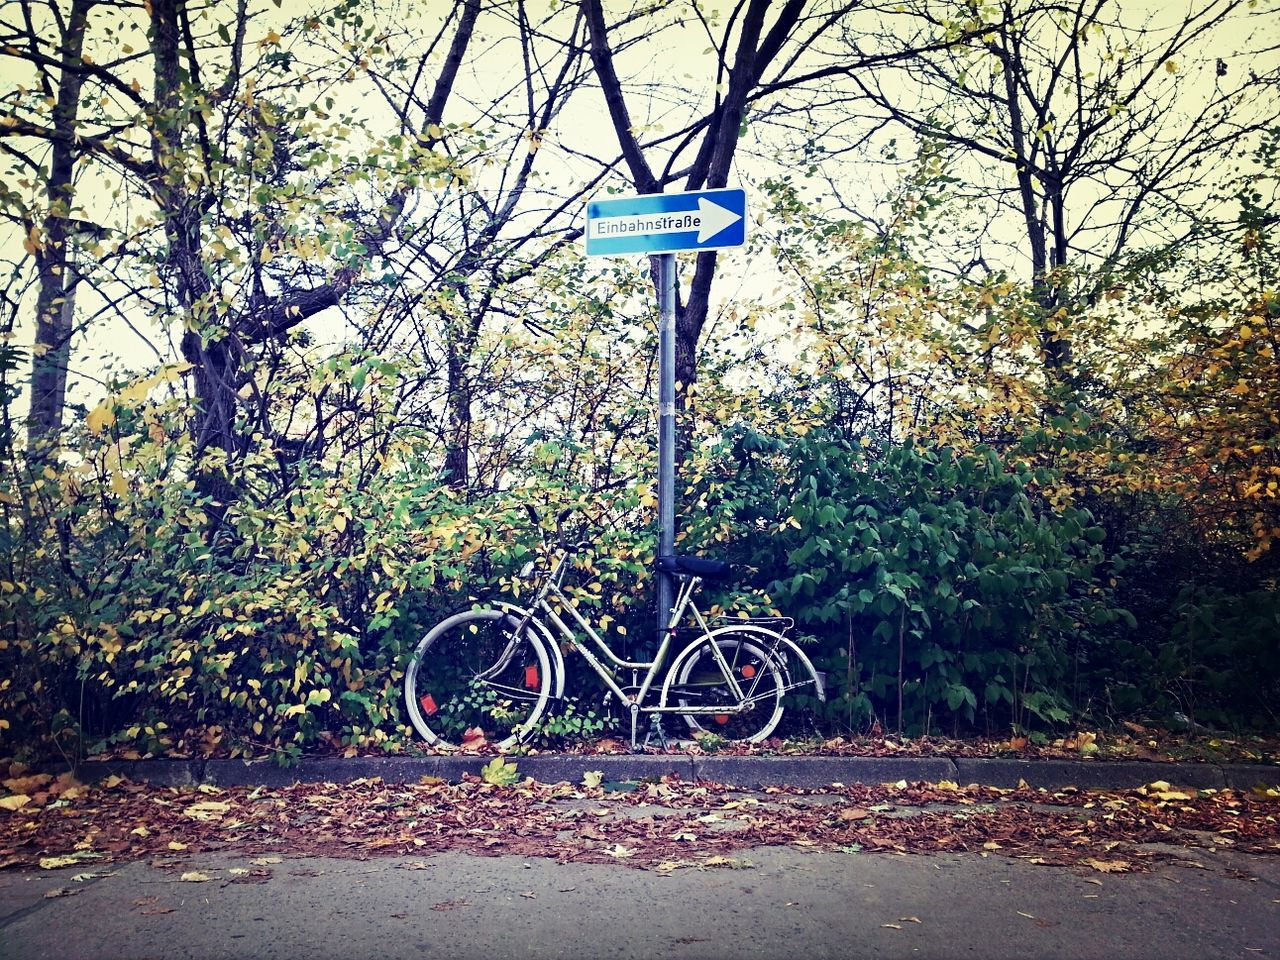 Bicycle parked against plants and arrow sign